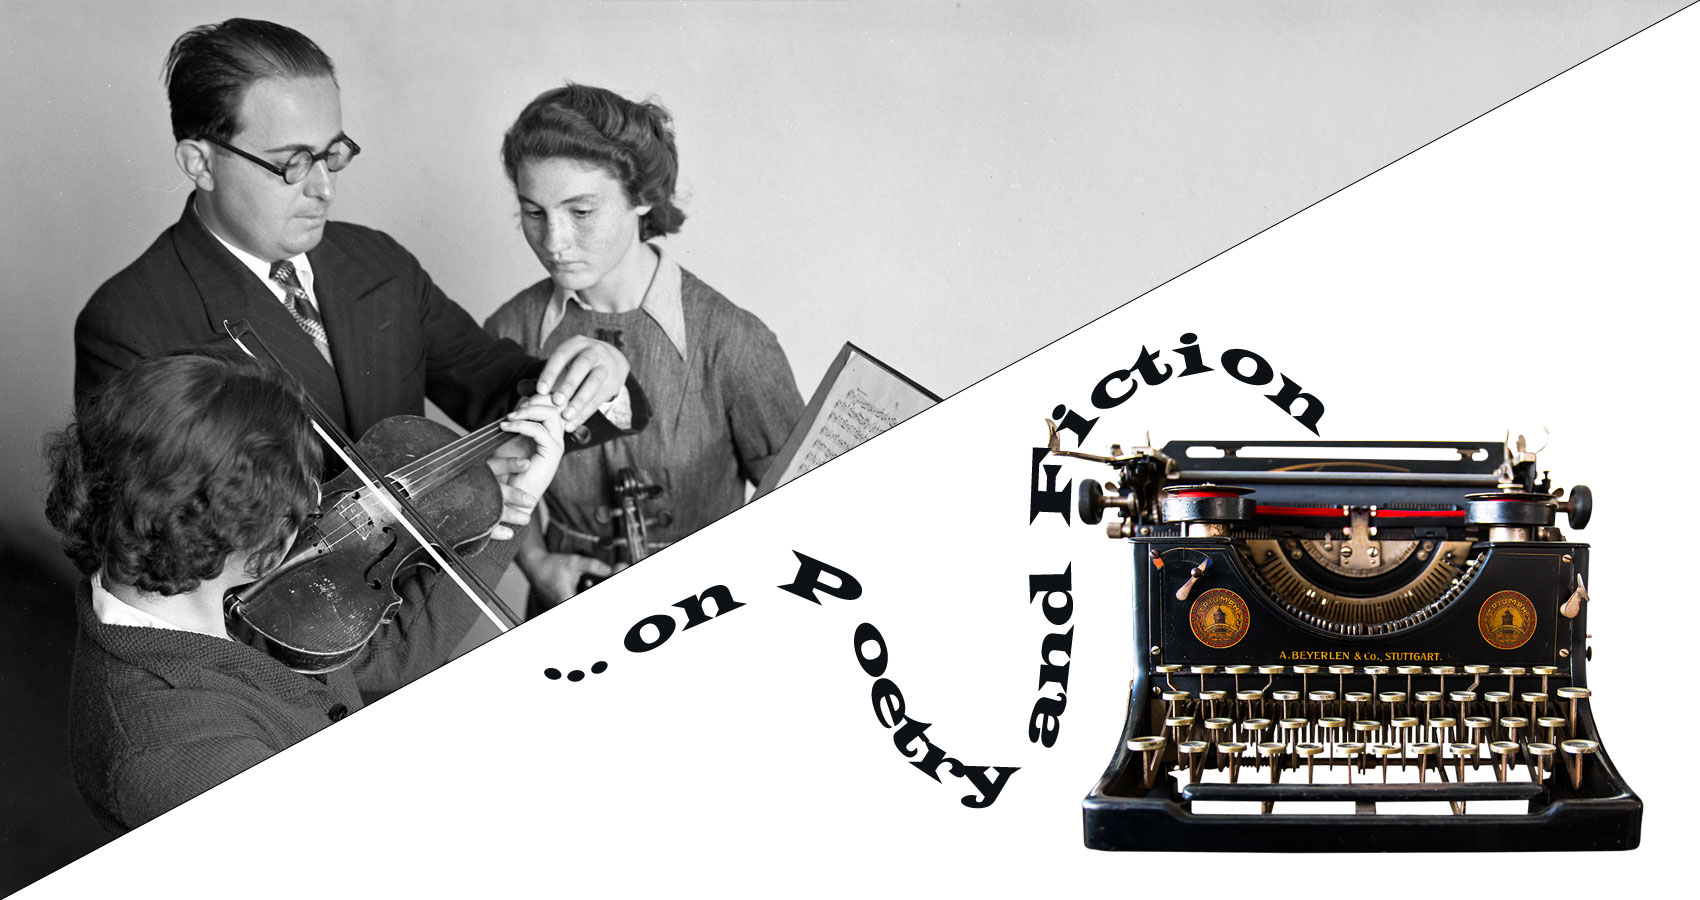 "...on Poetry and Fiction - A Poem dedicated to ""The Music Man"" by Phyllis P. Colucci at Spillwords.com"